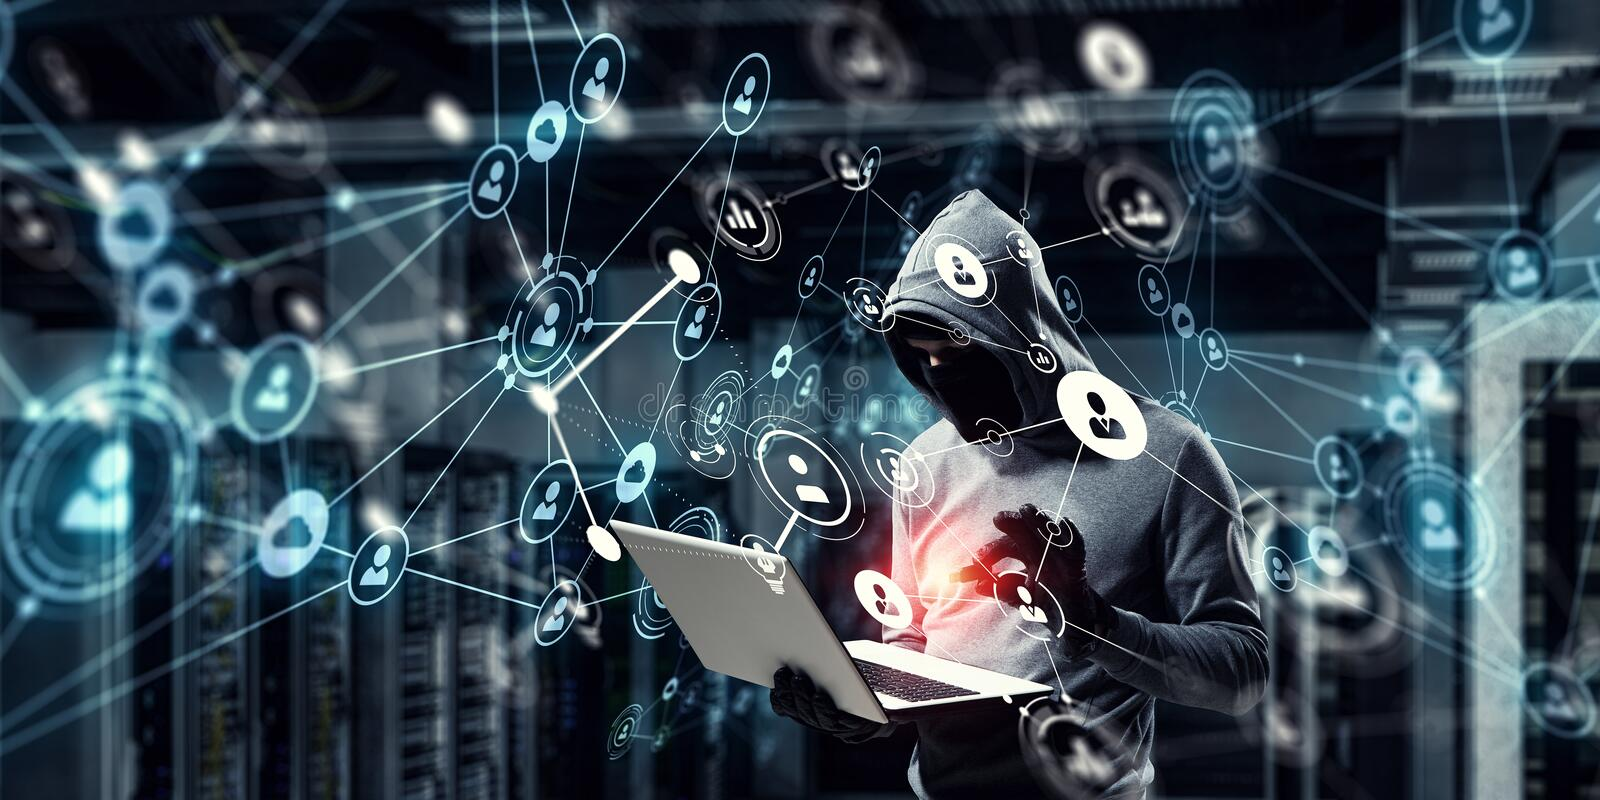 Network security and privacy crime. Mixed media. Computer hacker in hoodie and mask stealing data from laptop. Mixed media royalty free stock photos